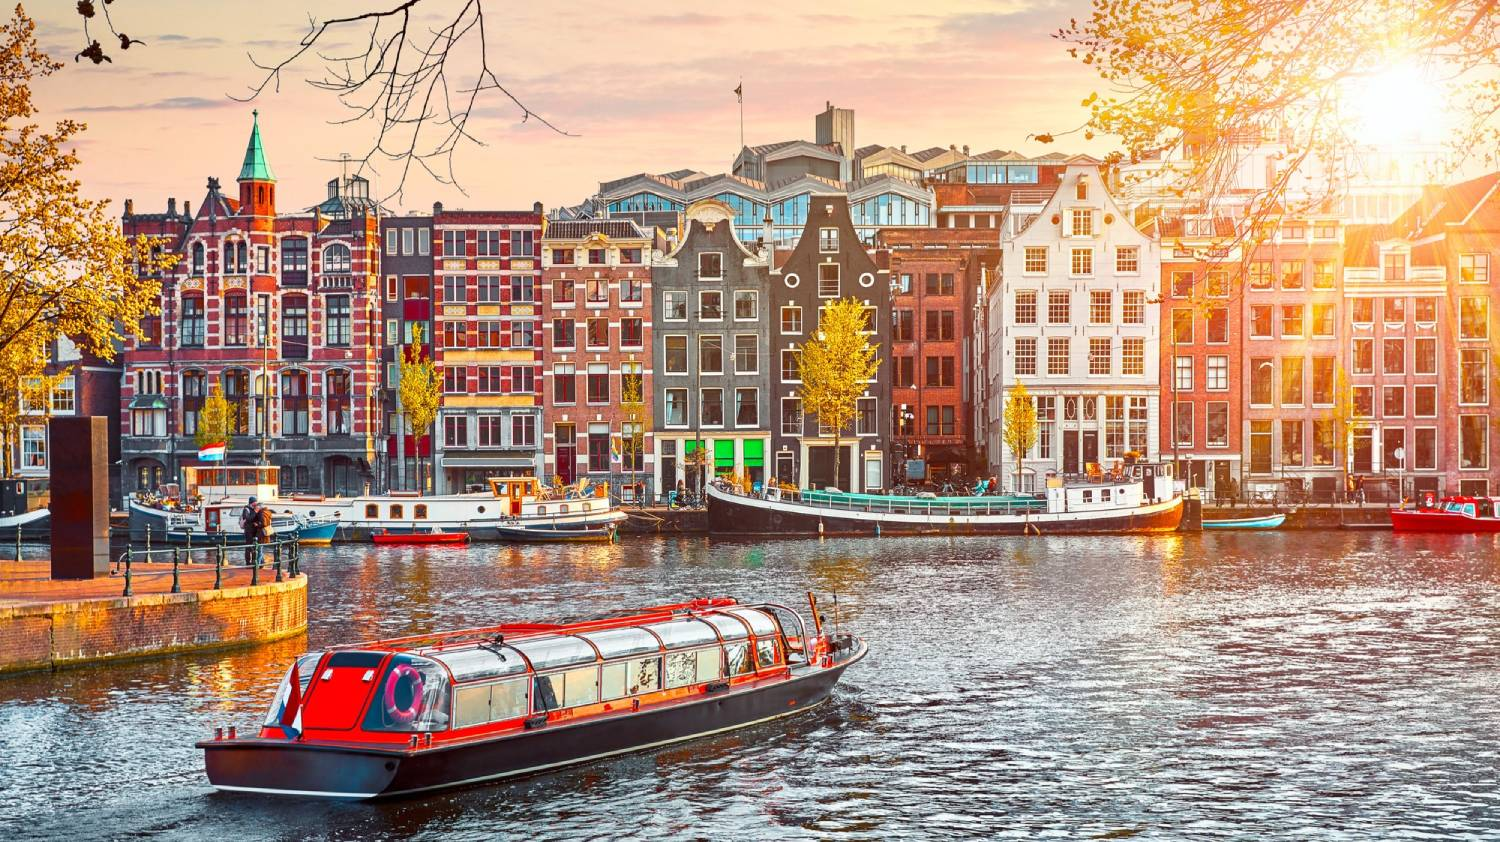 Amstel River - Things To Do In Amsterdam